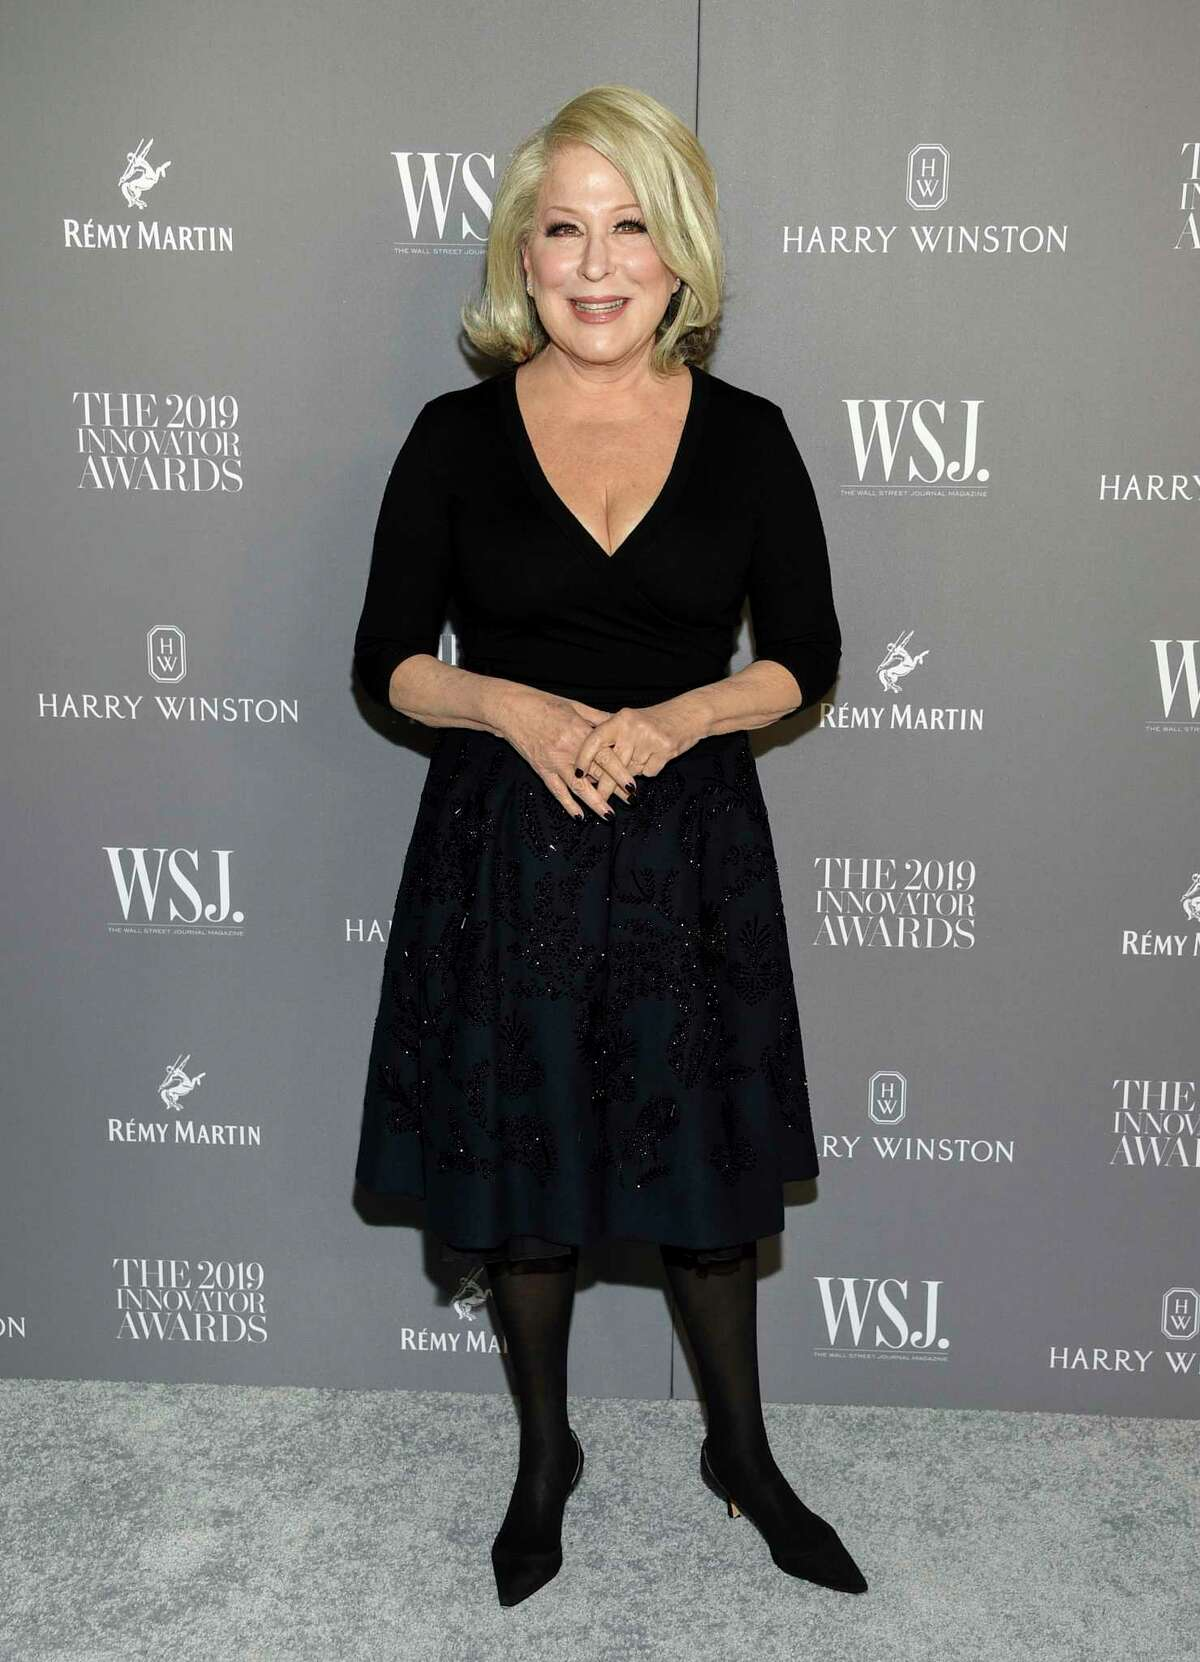 Singer Bette Midler attends the WSJ. Magazine 2019 Innovator Awards at the Museum of Modern Art on Wednesday, Nov. 6, 2019, in New York. (Photo by Evan Agostini/Invision/AP)